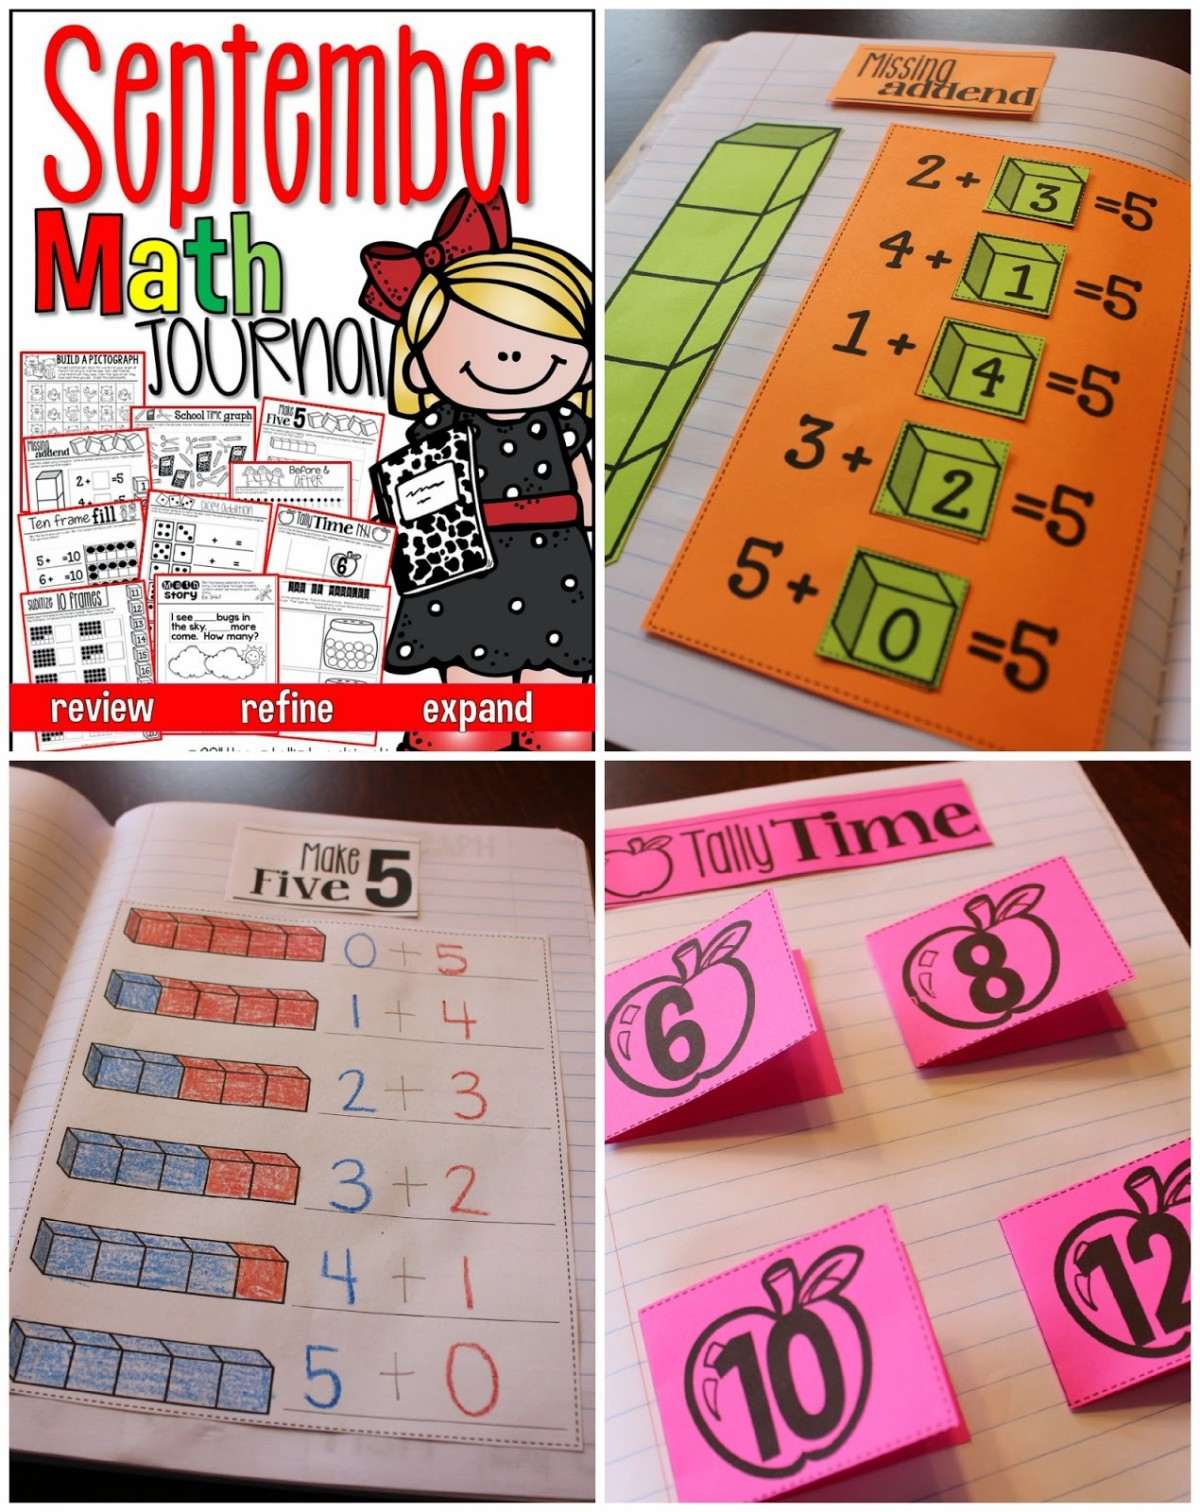 http://www.teacherspayteachers.com/Product/September-Math-Journal-Interactive-Printables-1240861